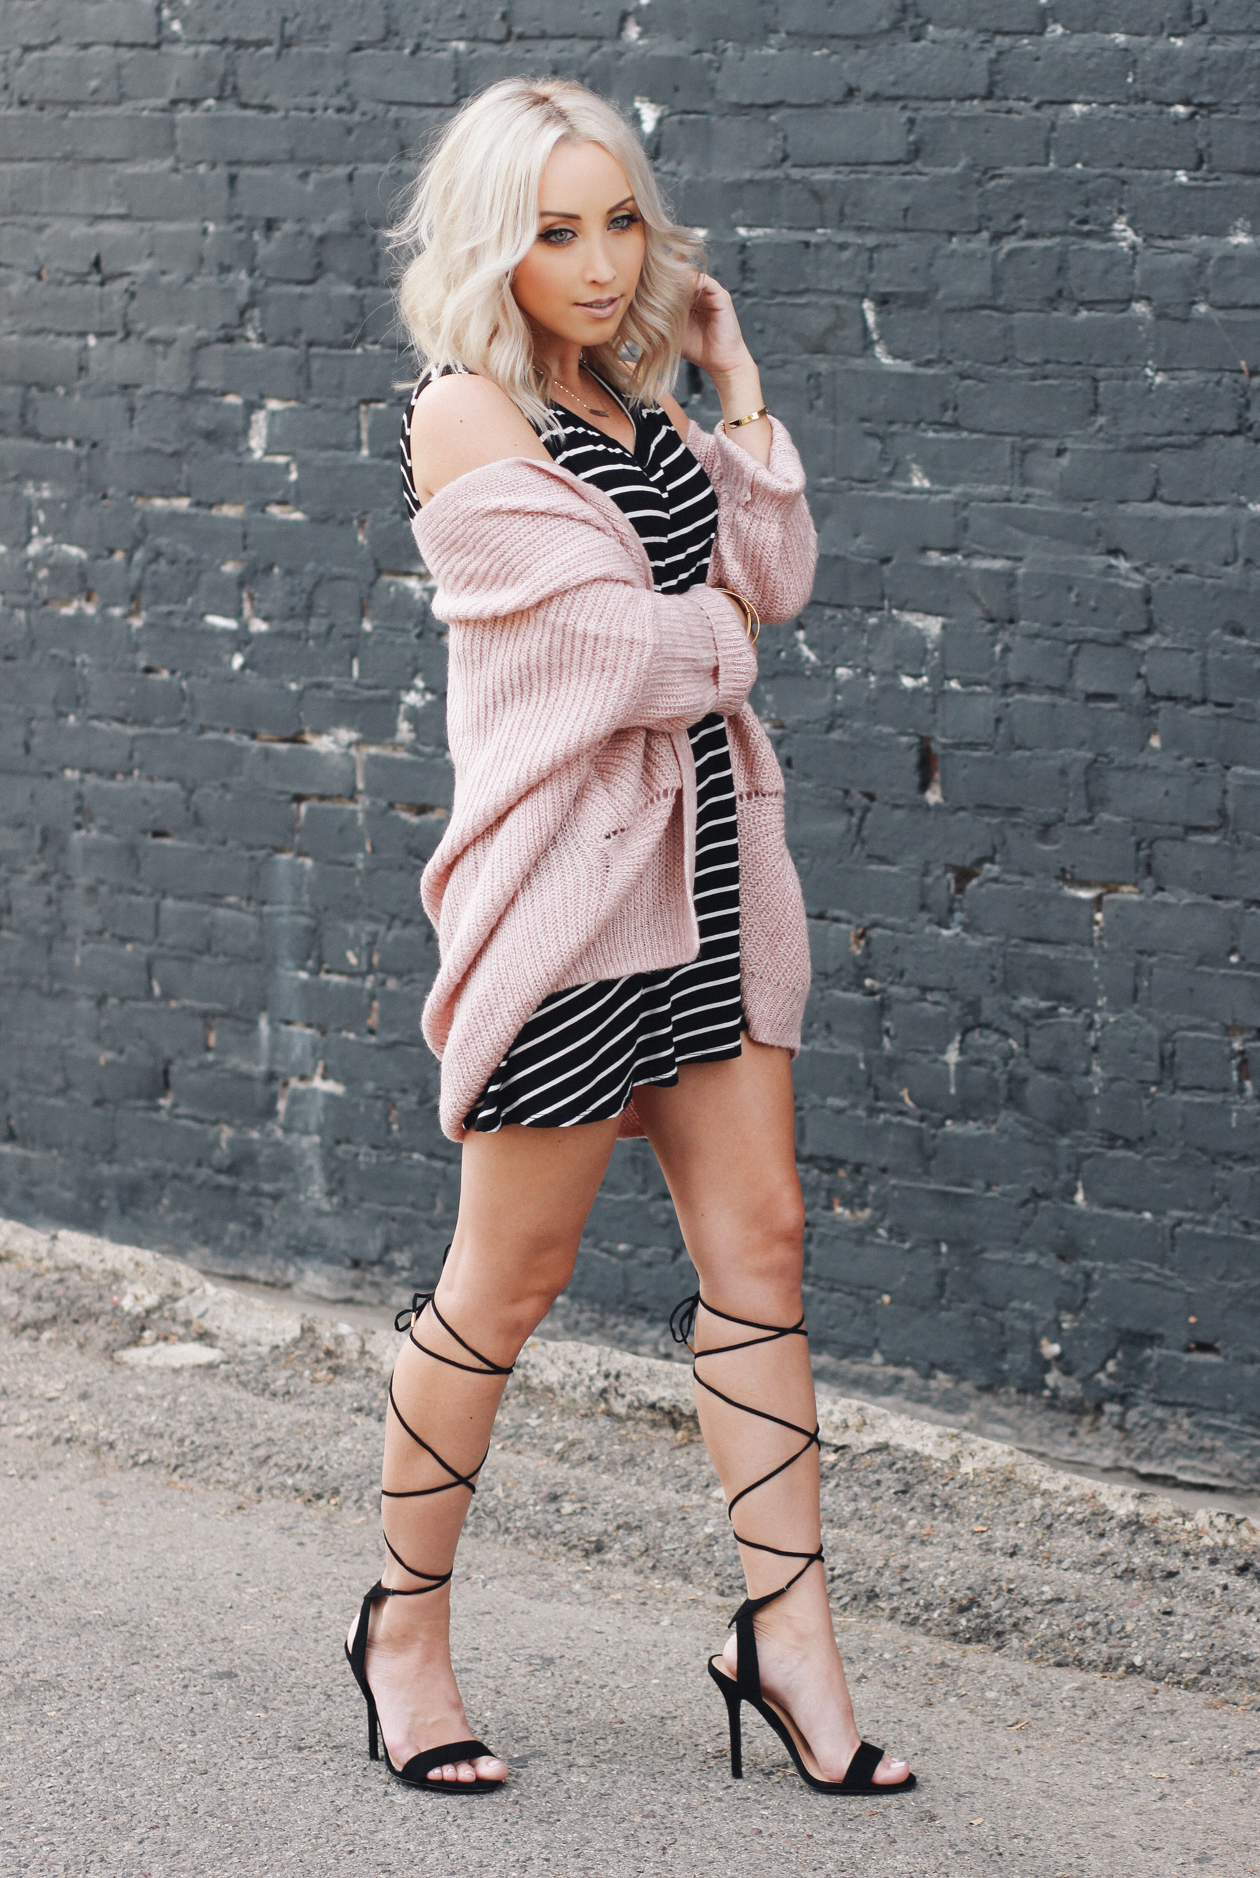 Striped Dress + Lace Up Heels | StyledByBlondie.com